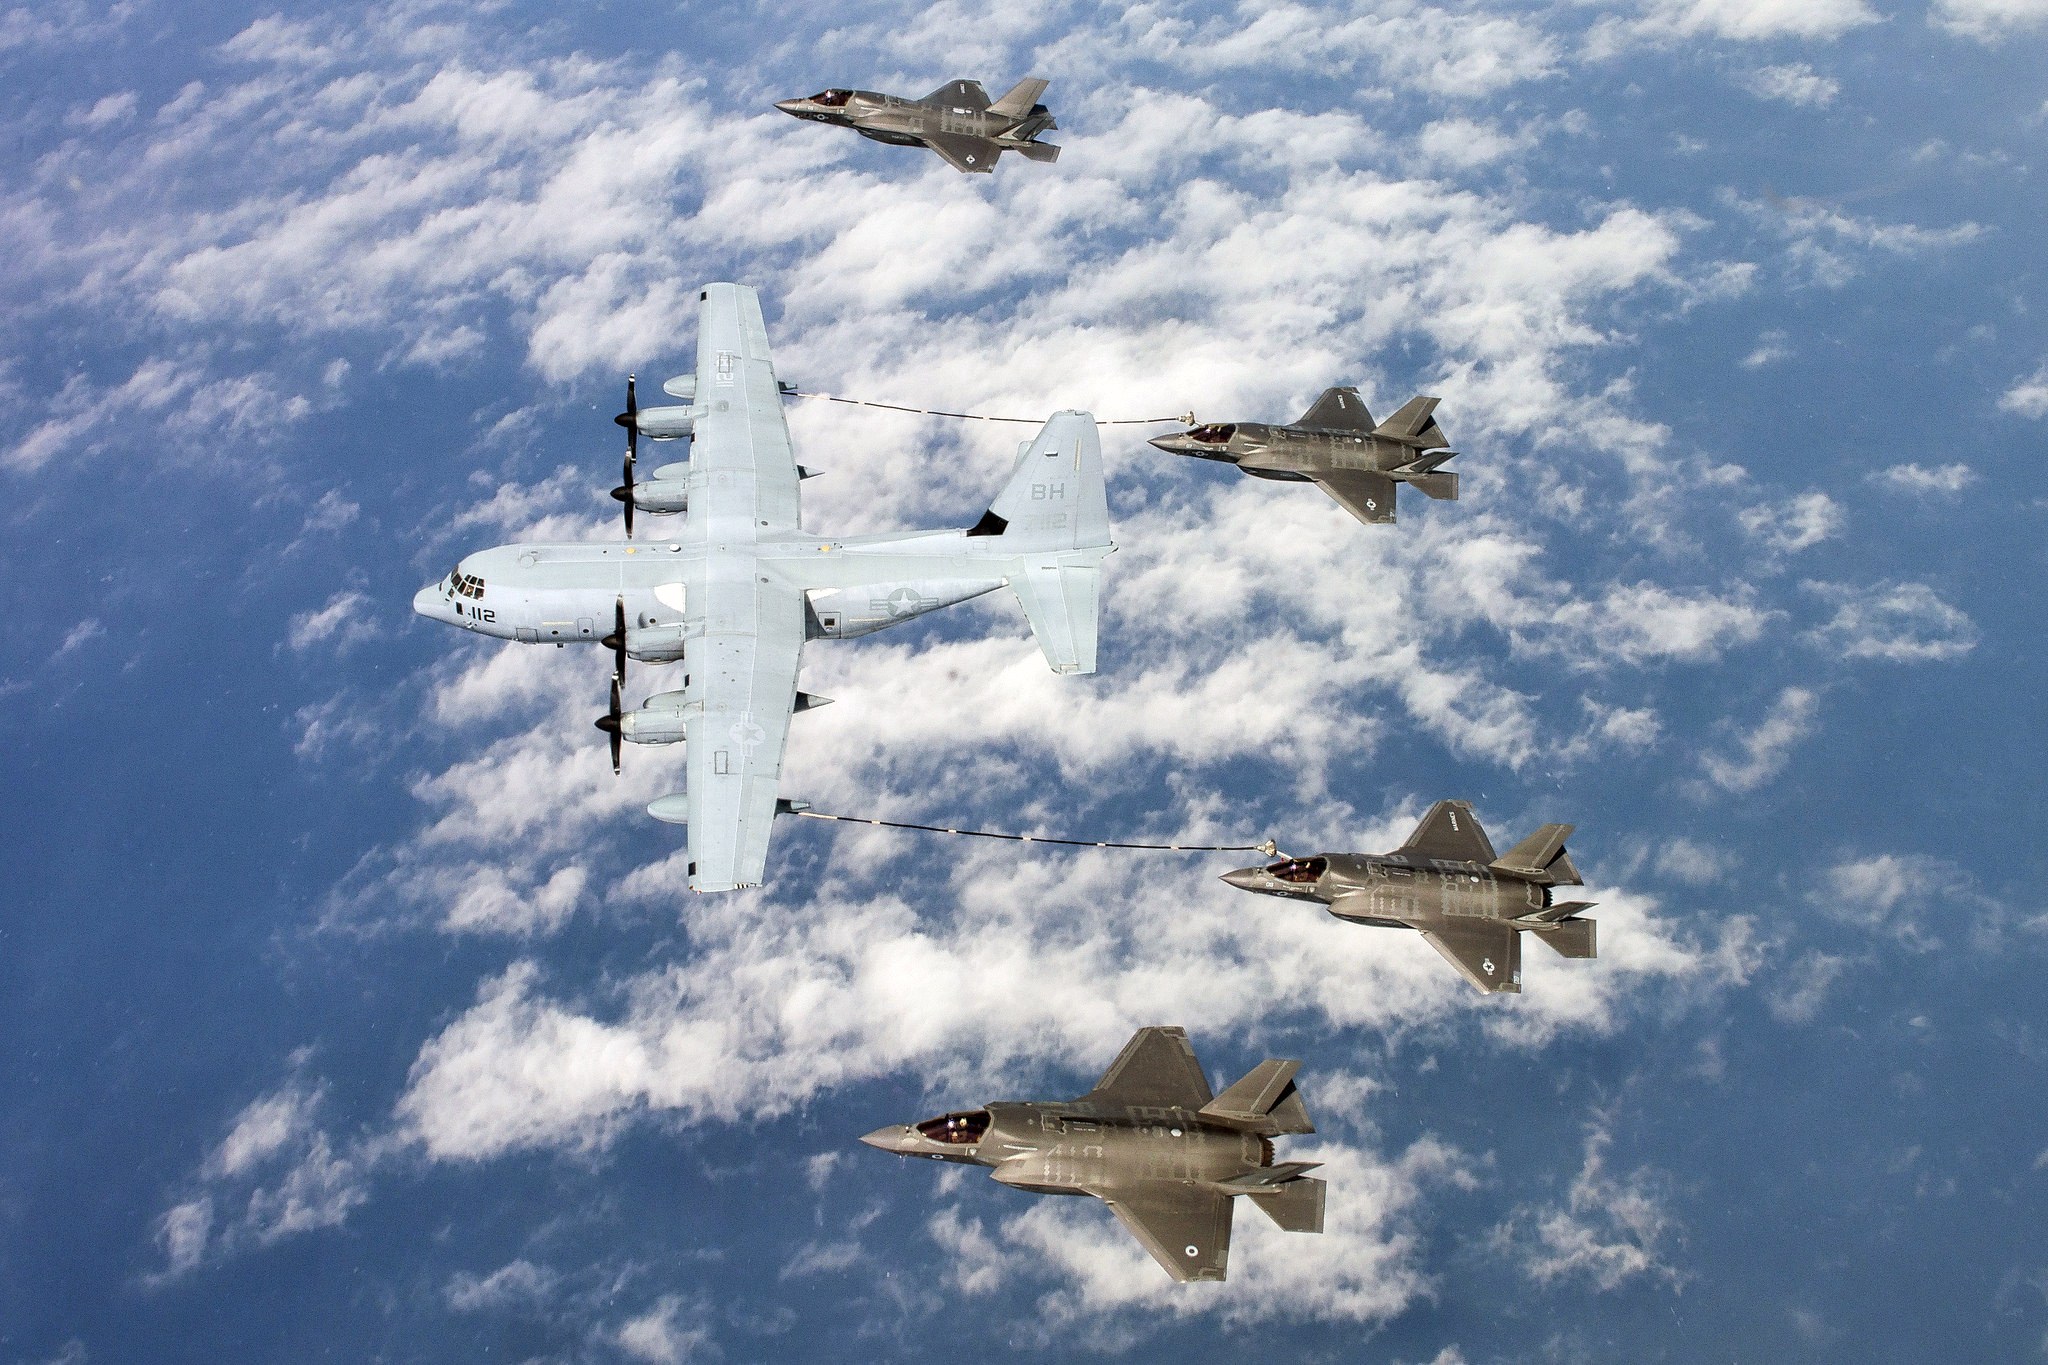 C-130 and F-35s